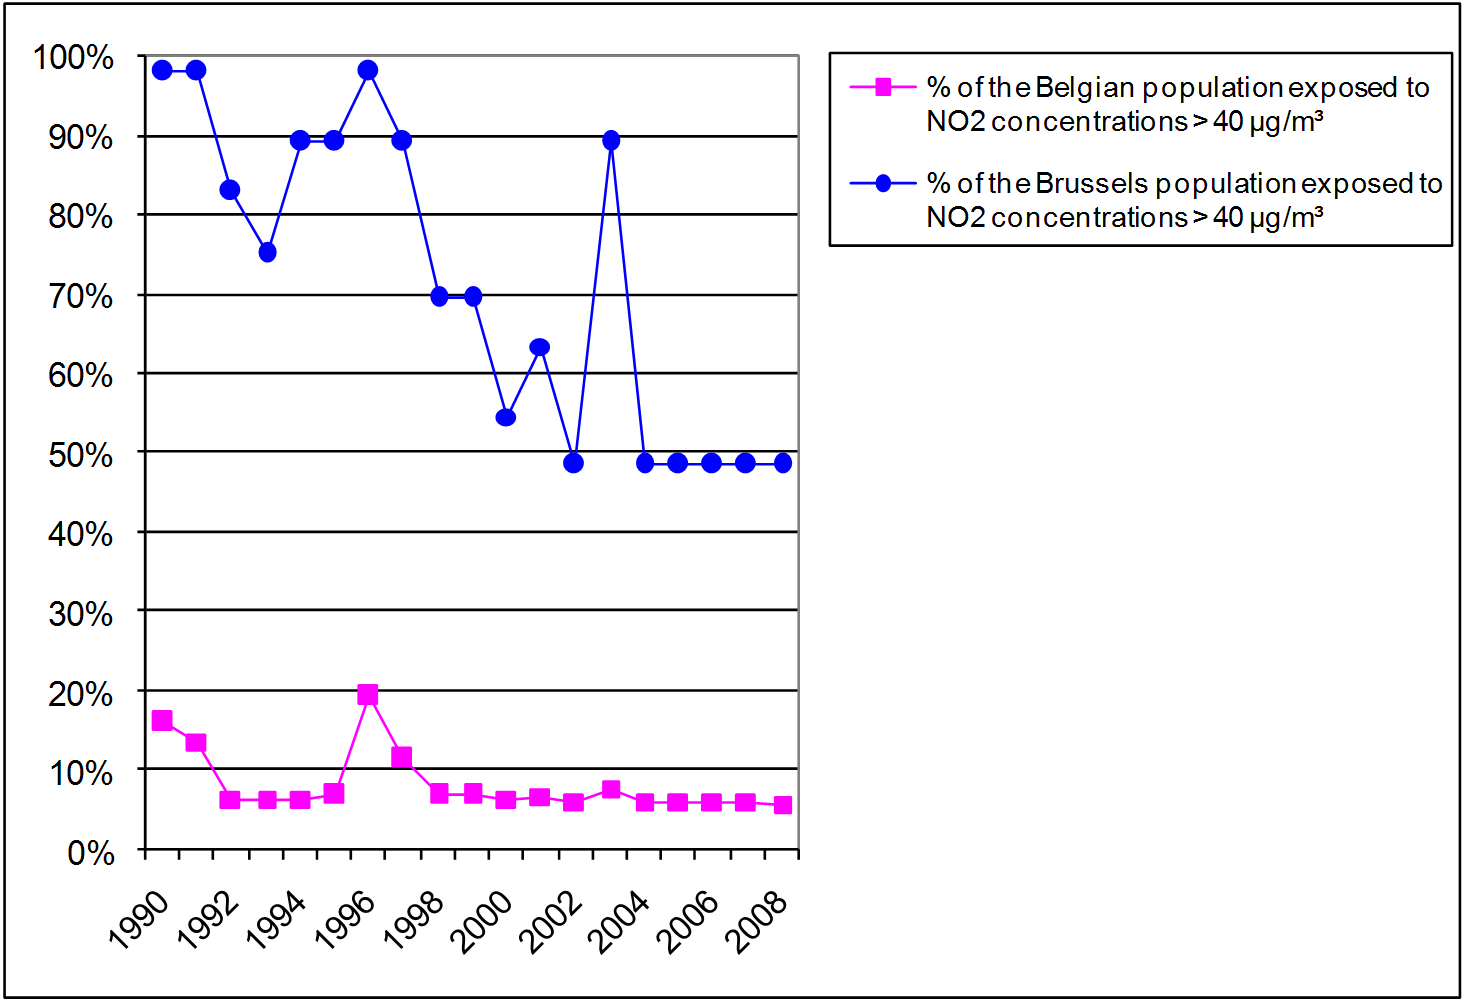 Figure 3: Percentage of the Belgian and the Brussels population potentially exposed to NO2